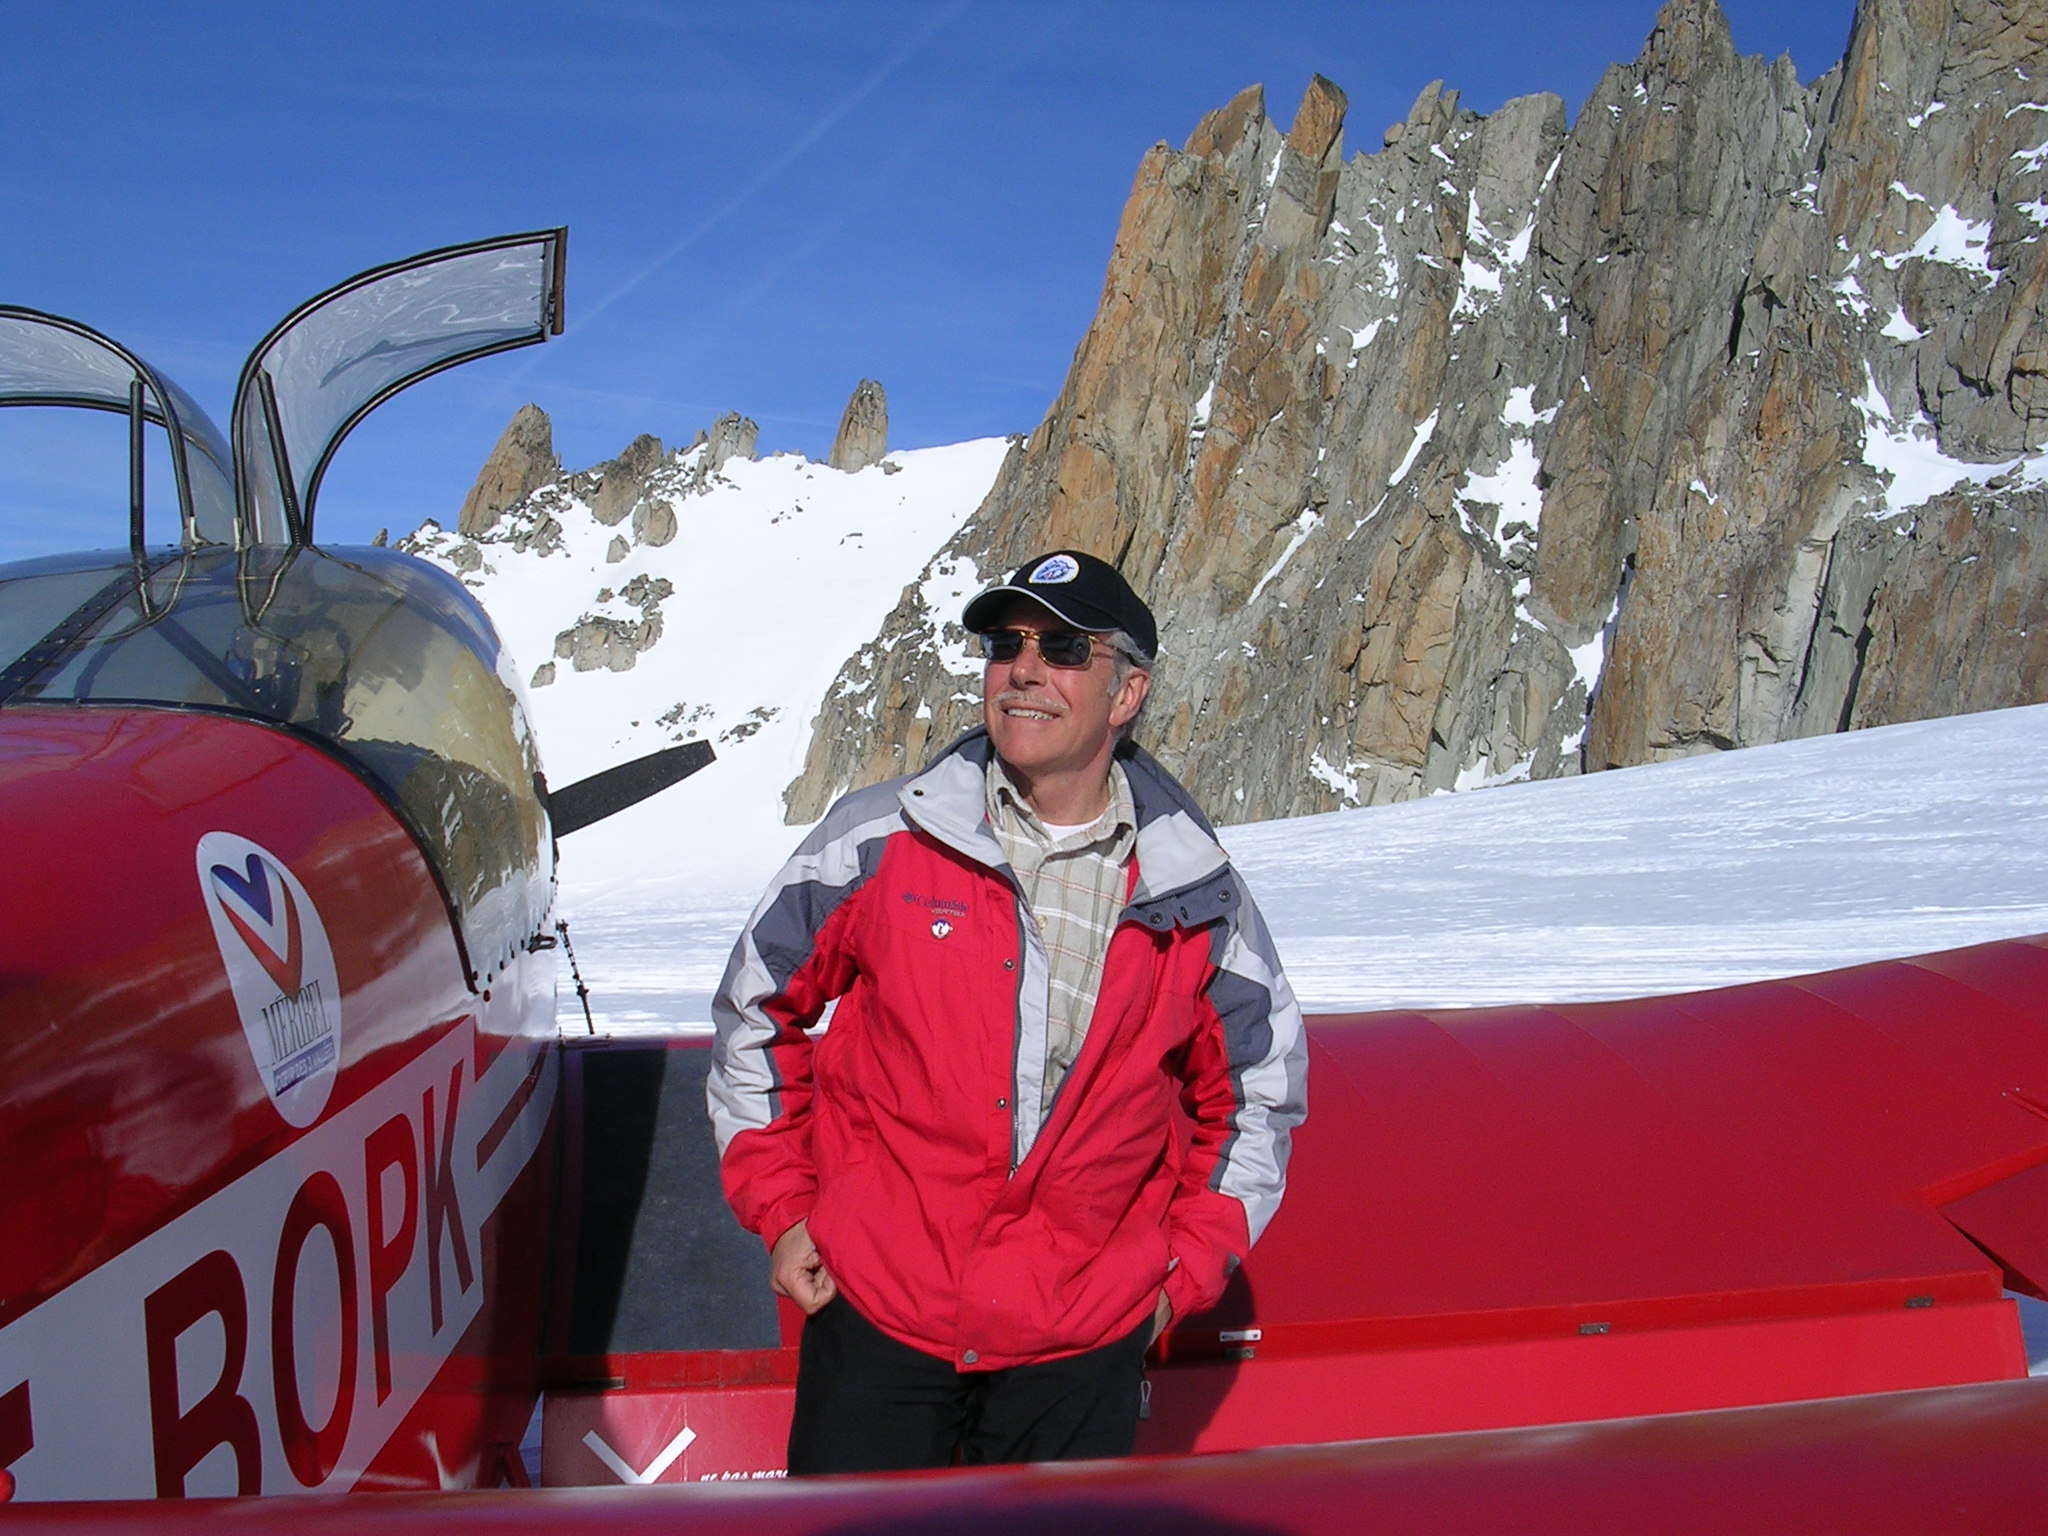 http://ac-meribel.com/wp-content/uploads/Page_Accueil/Page_accueil_23.jpg